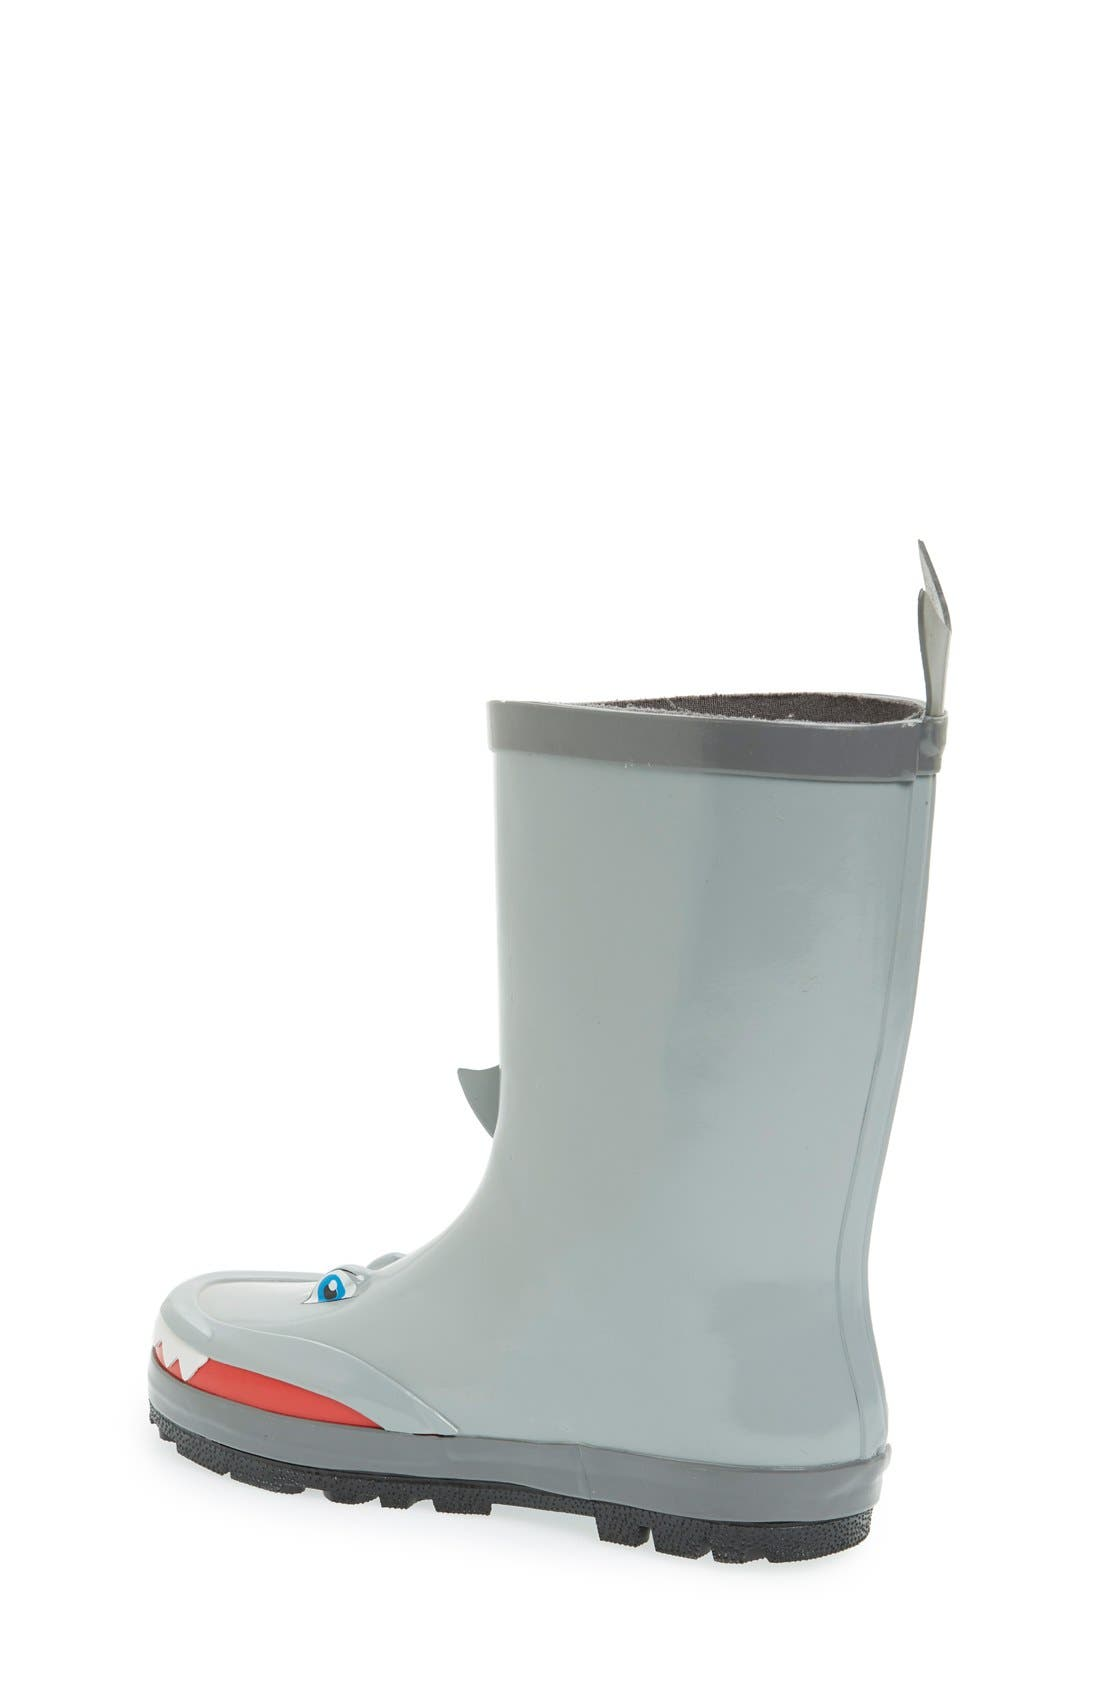 'Shark' Waterproof Rain Boot,                             Alternate thumbnail 2, color,                             Grey